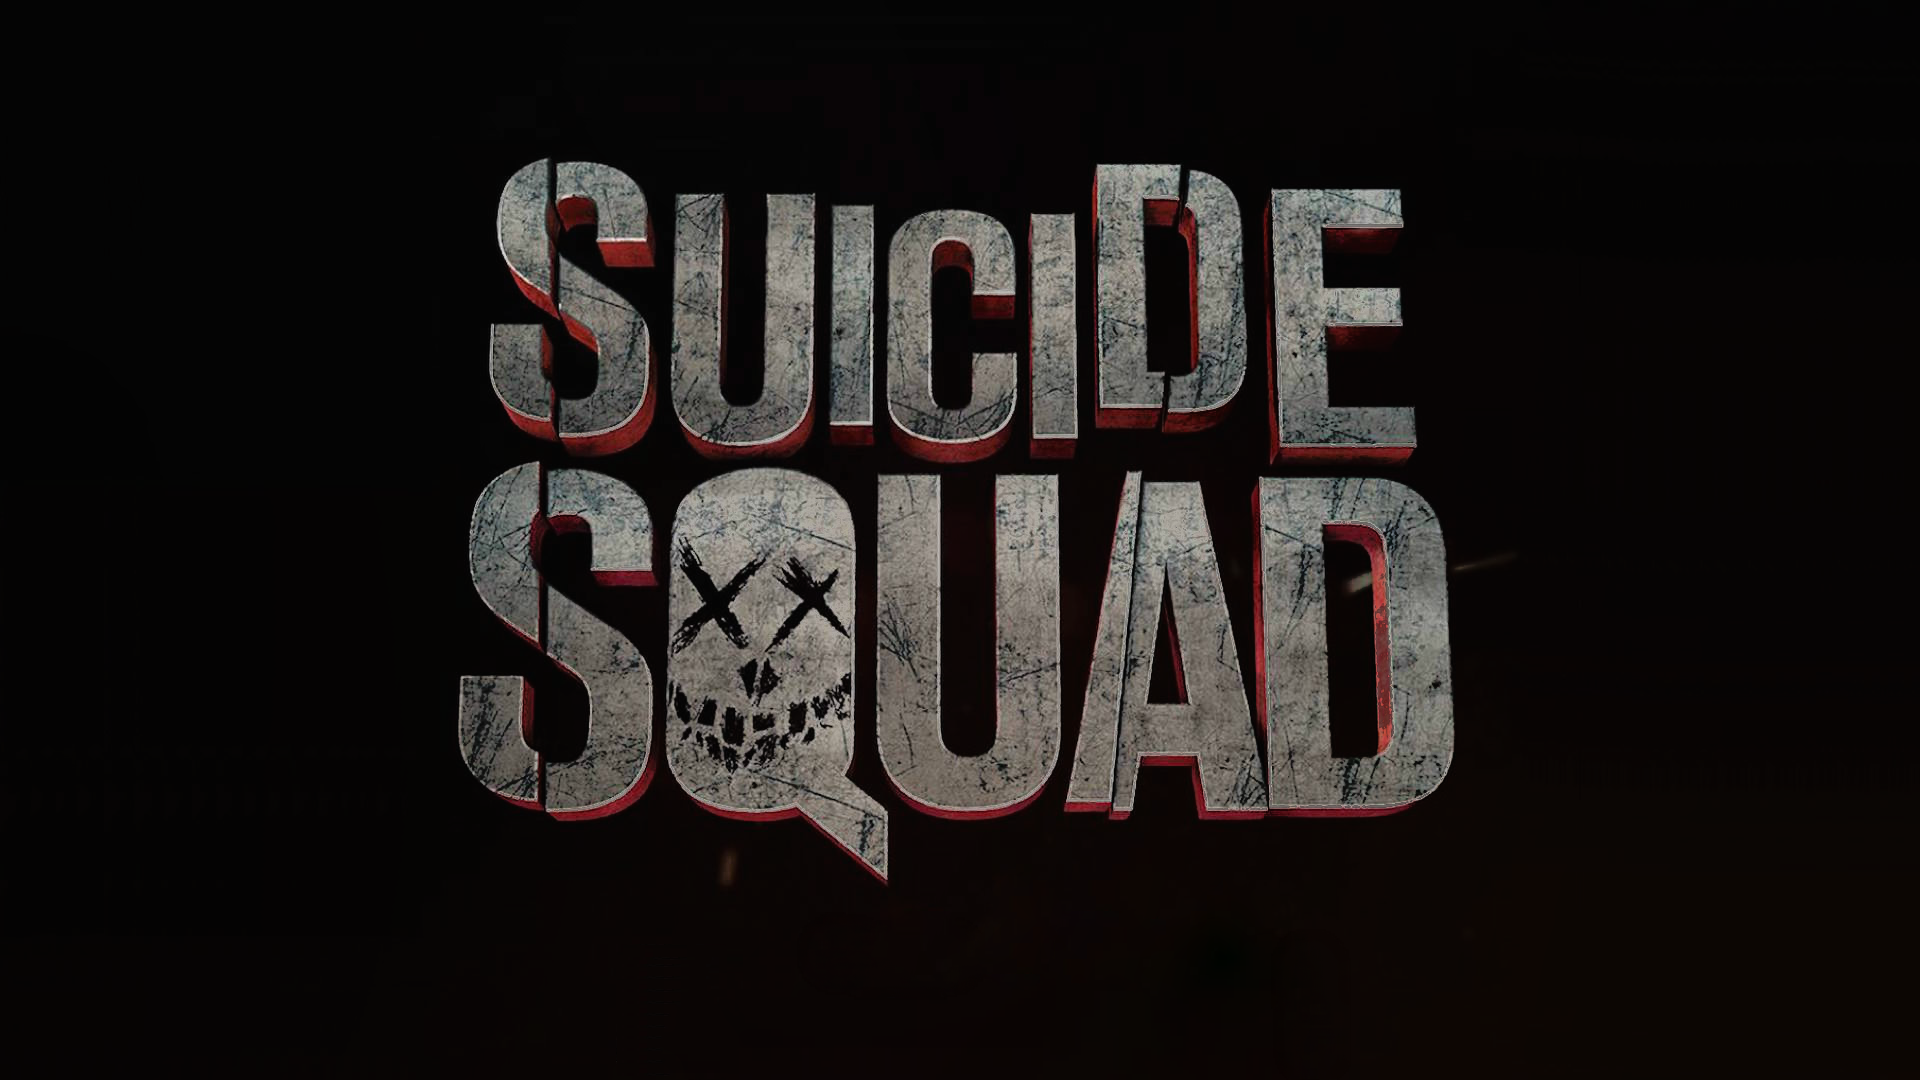 Suicide Squad Enchantress Wallpaper 61376 1600x1000px